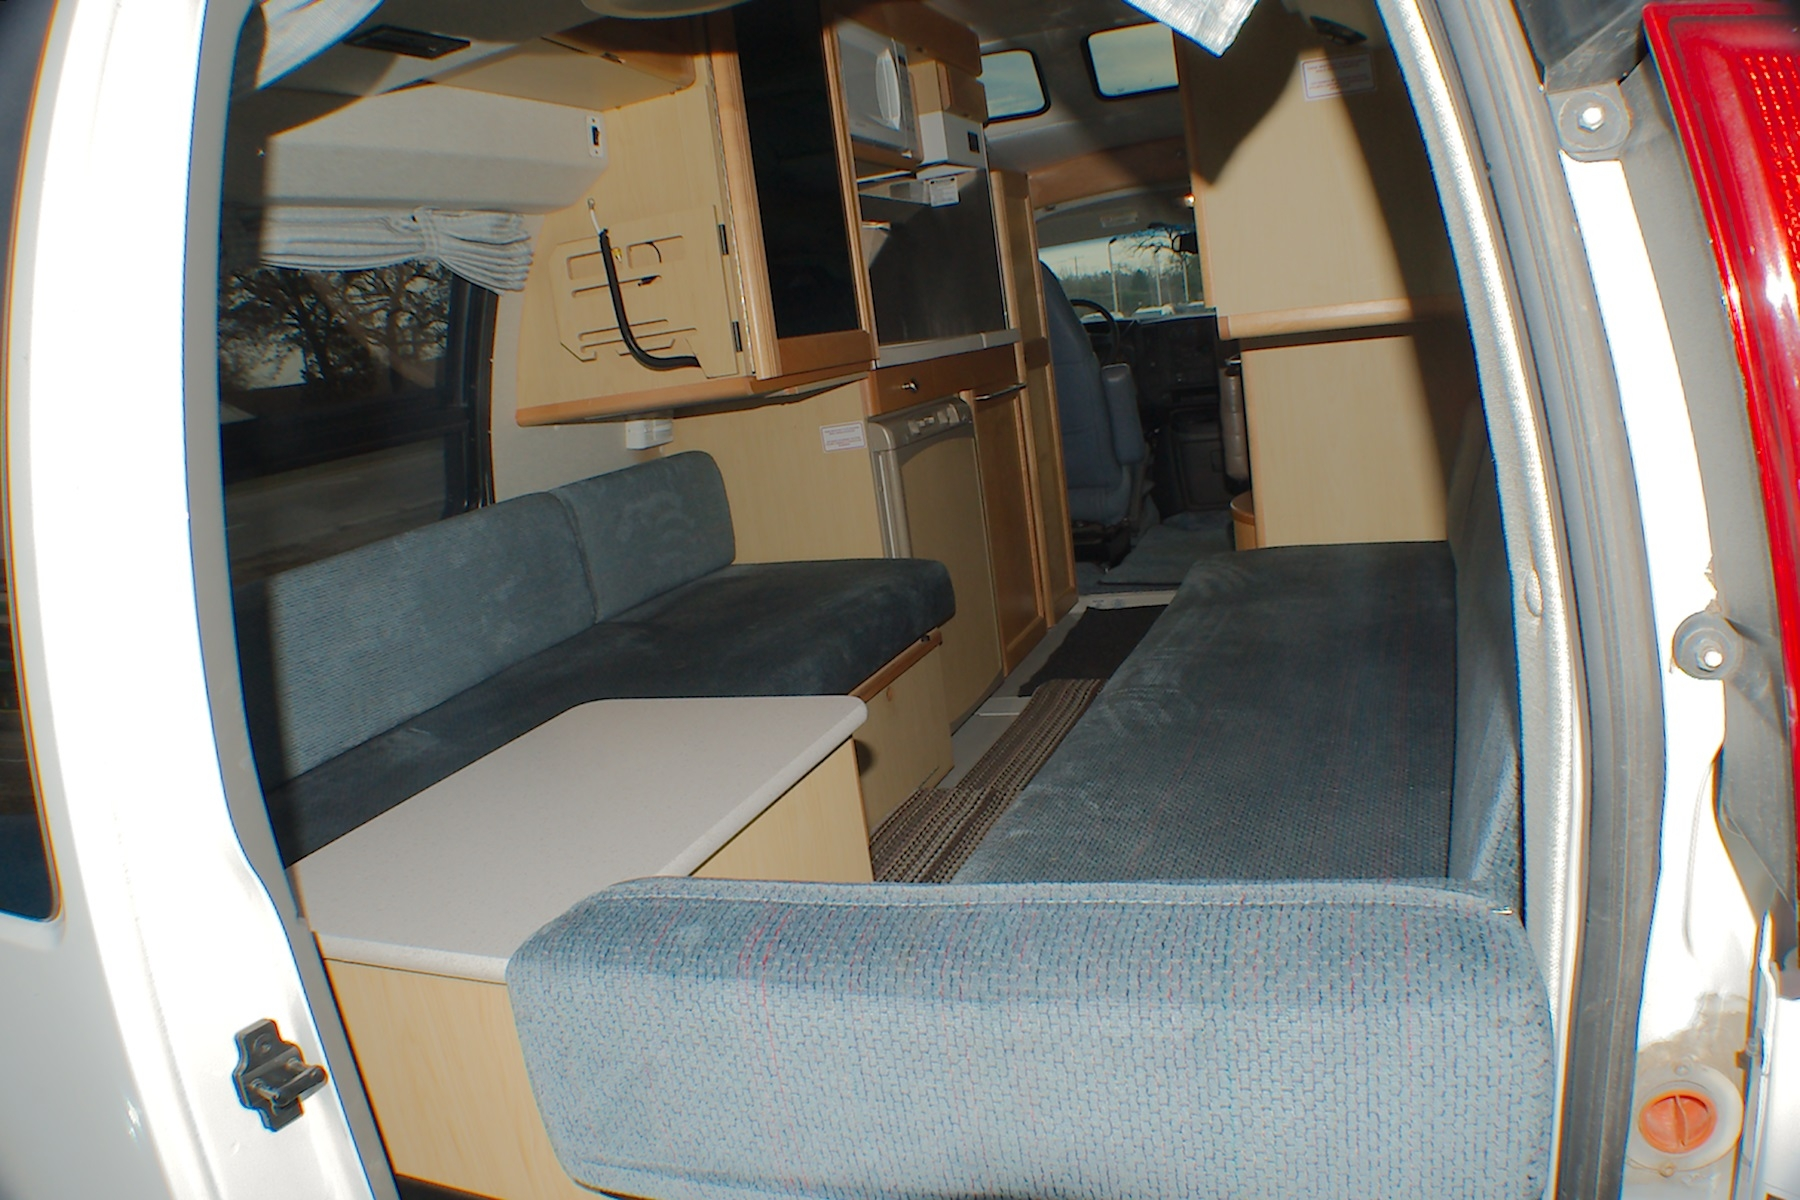 2004 Chevy RoadTrek 190 Popular Class B Used RV Sale Barrington North Chicago Old Mill Creek